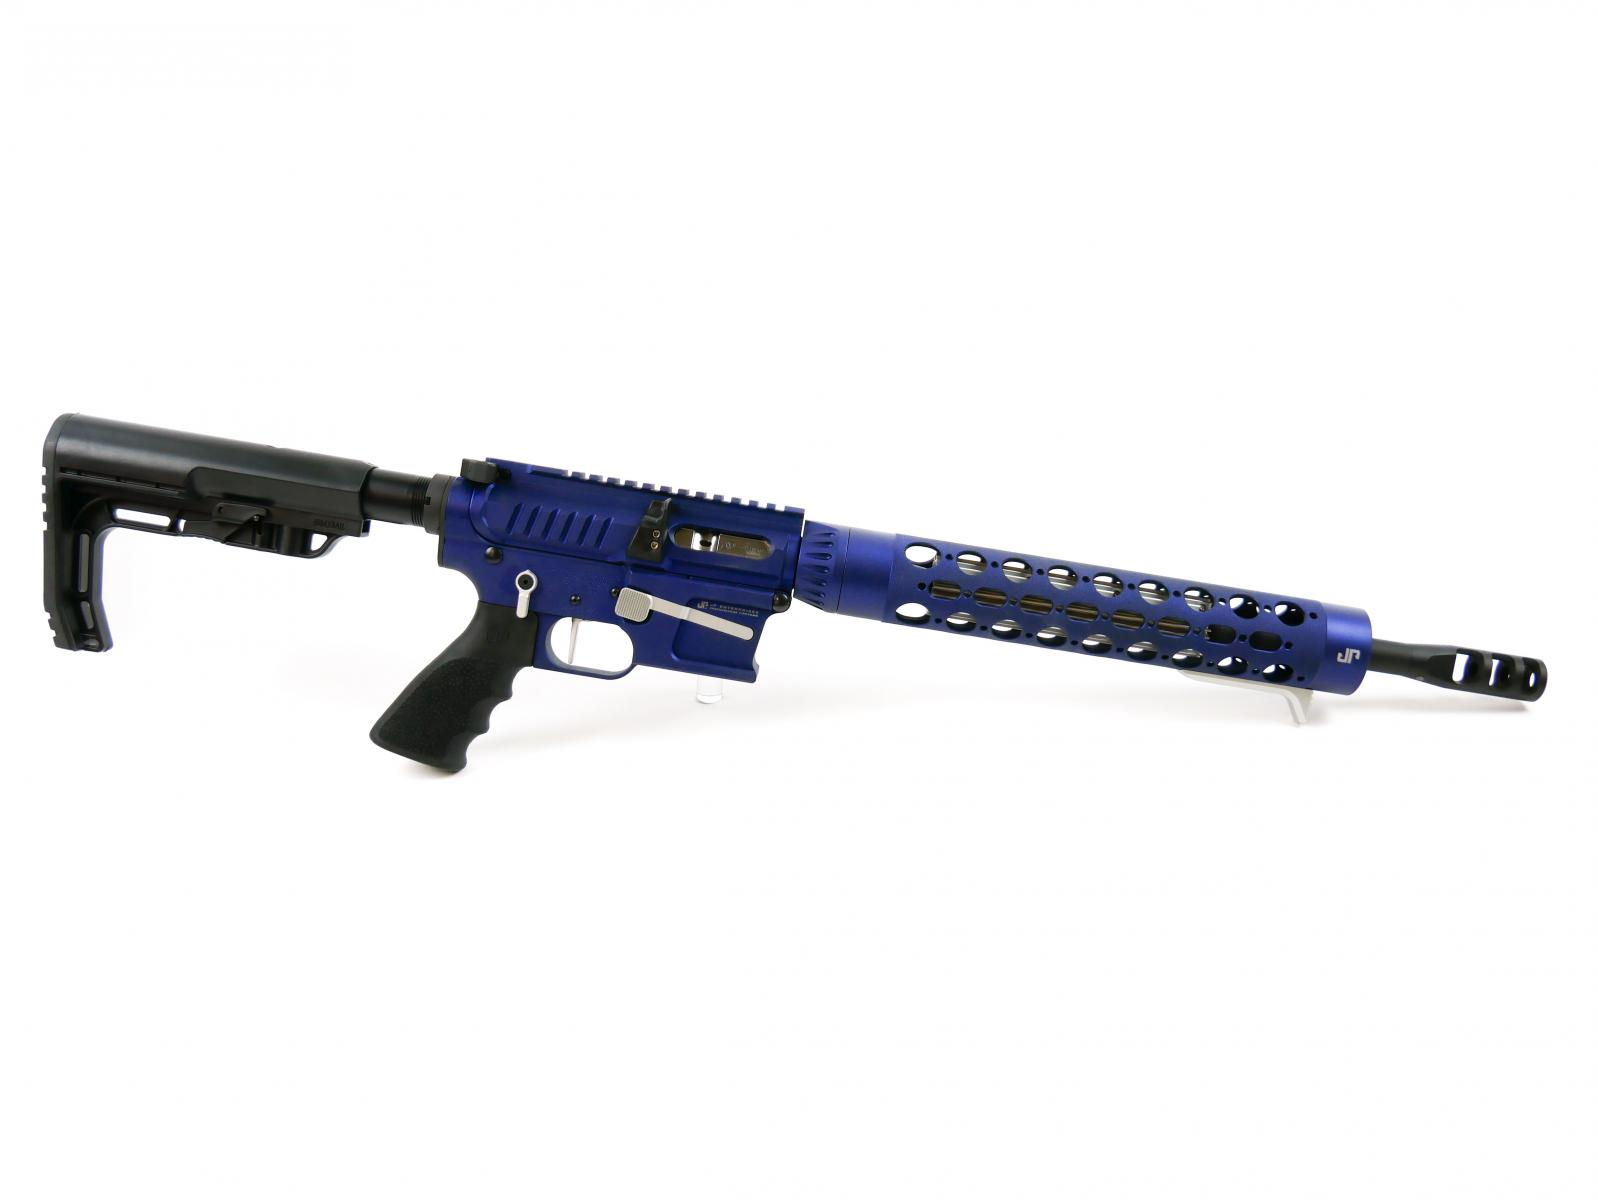 "JP GMR-15 Dual Charge Rifle |9mm 14.5"" Black Barrel, GunCandy Supersonic Finish, Top Charge / Side Charge Upper, Silver Thermal, Carbine Silent Captured Recoil Spring, MFT Adjustable Stock, 10 Round Glock Magazine"